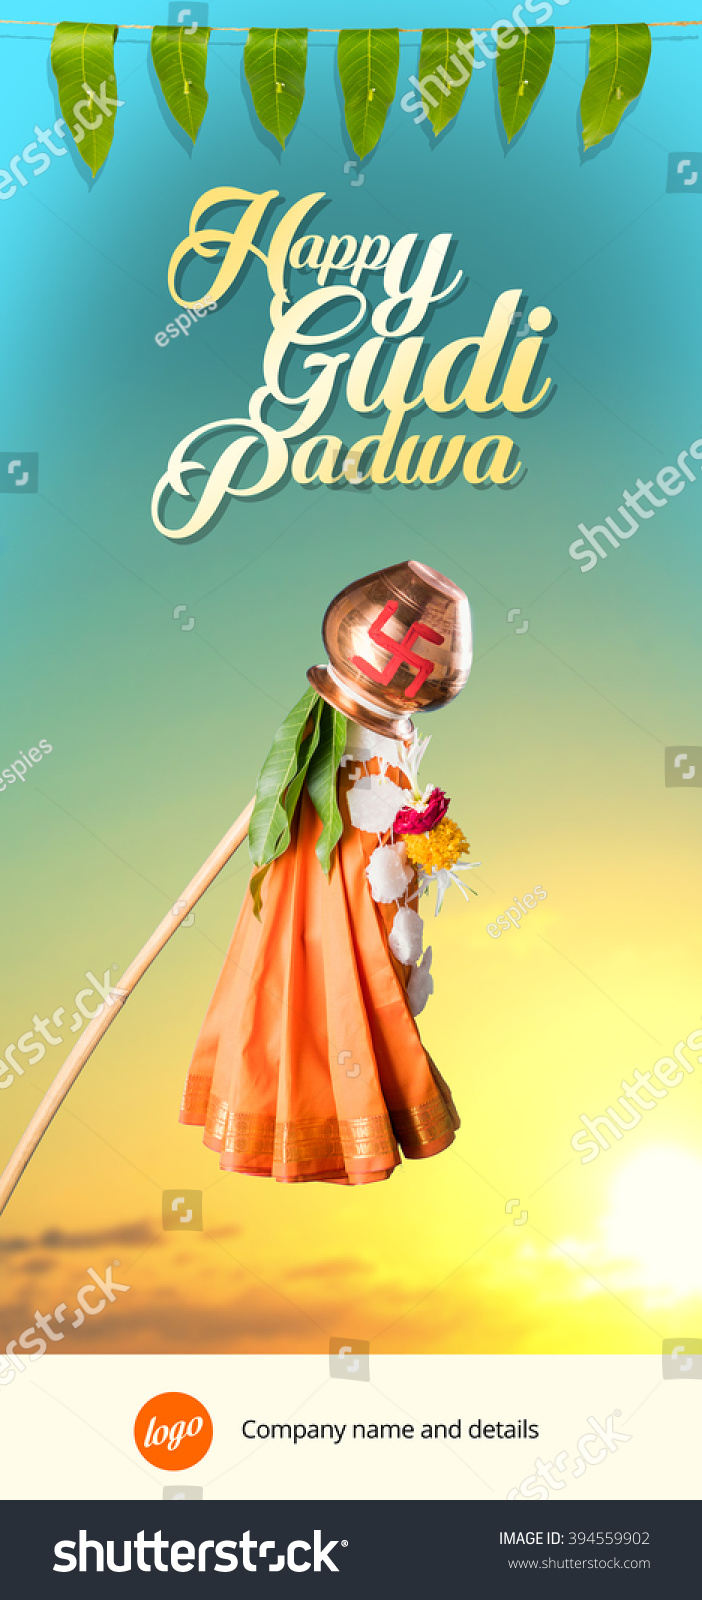 Royalty free happy gudi padwa greeting its a 394559902 stock happy gudi padwa greeting its a hindu new year celebrated across india where gudhi is errected outside home made up of bamboo stick cloth garland m4hsunfo